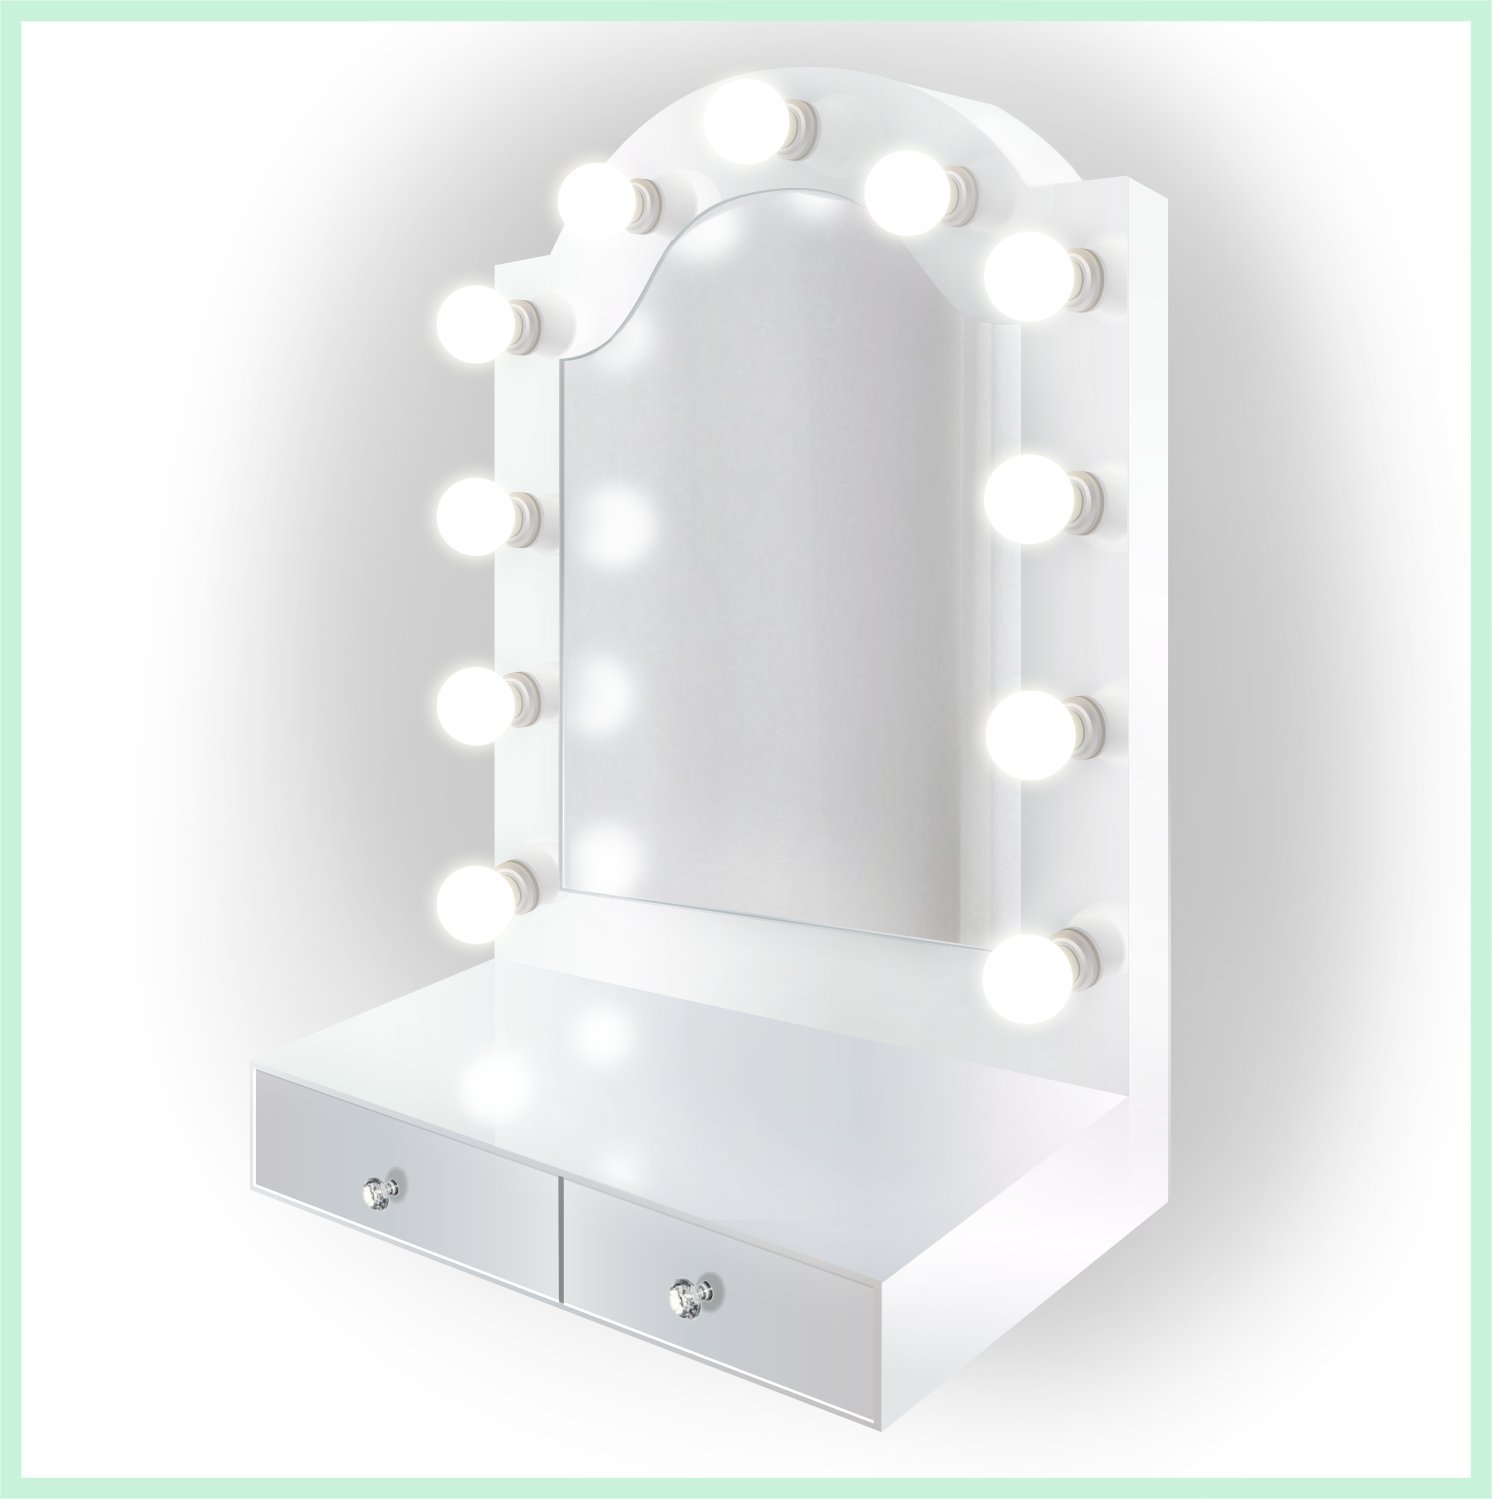 25 inch x 31 inch Lighted Hollywood Arch Vanity Mirror | Makeup Mirror With Storage| Table Top Or Wall Mount | Plug-in